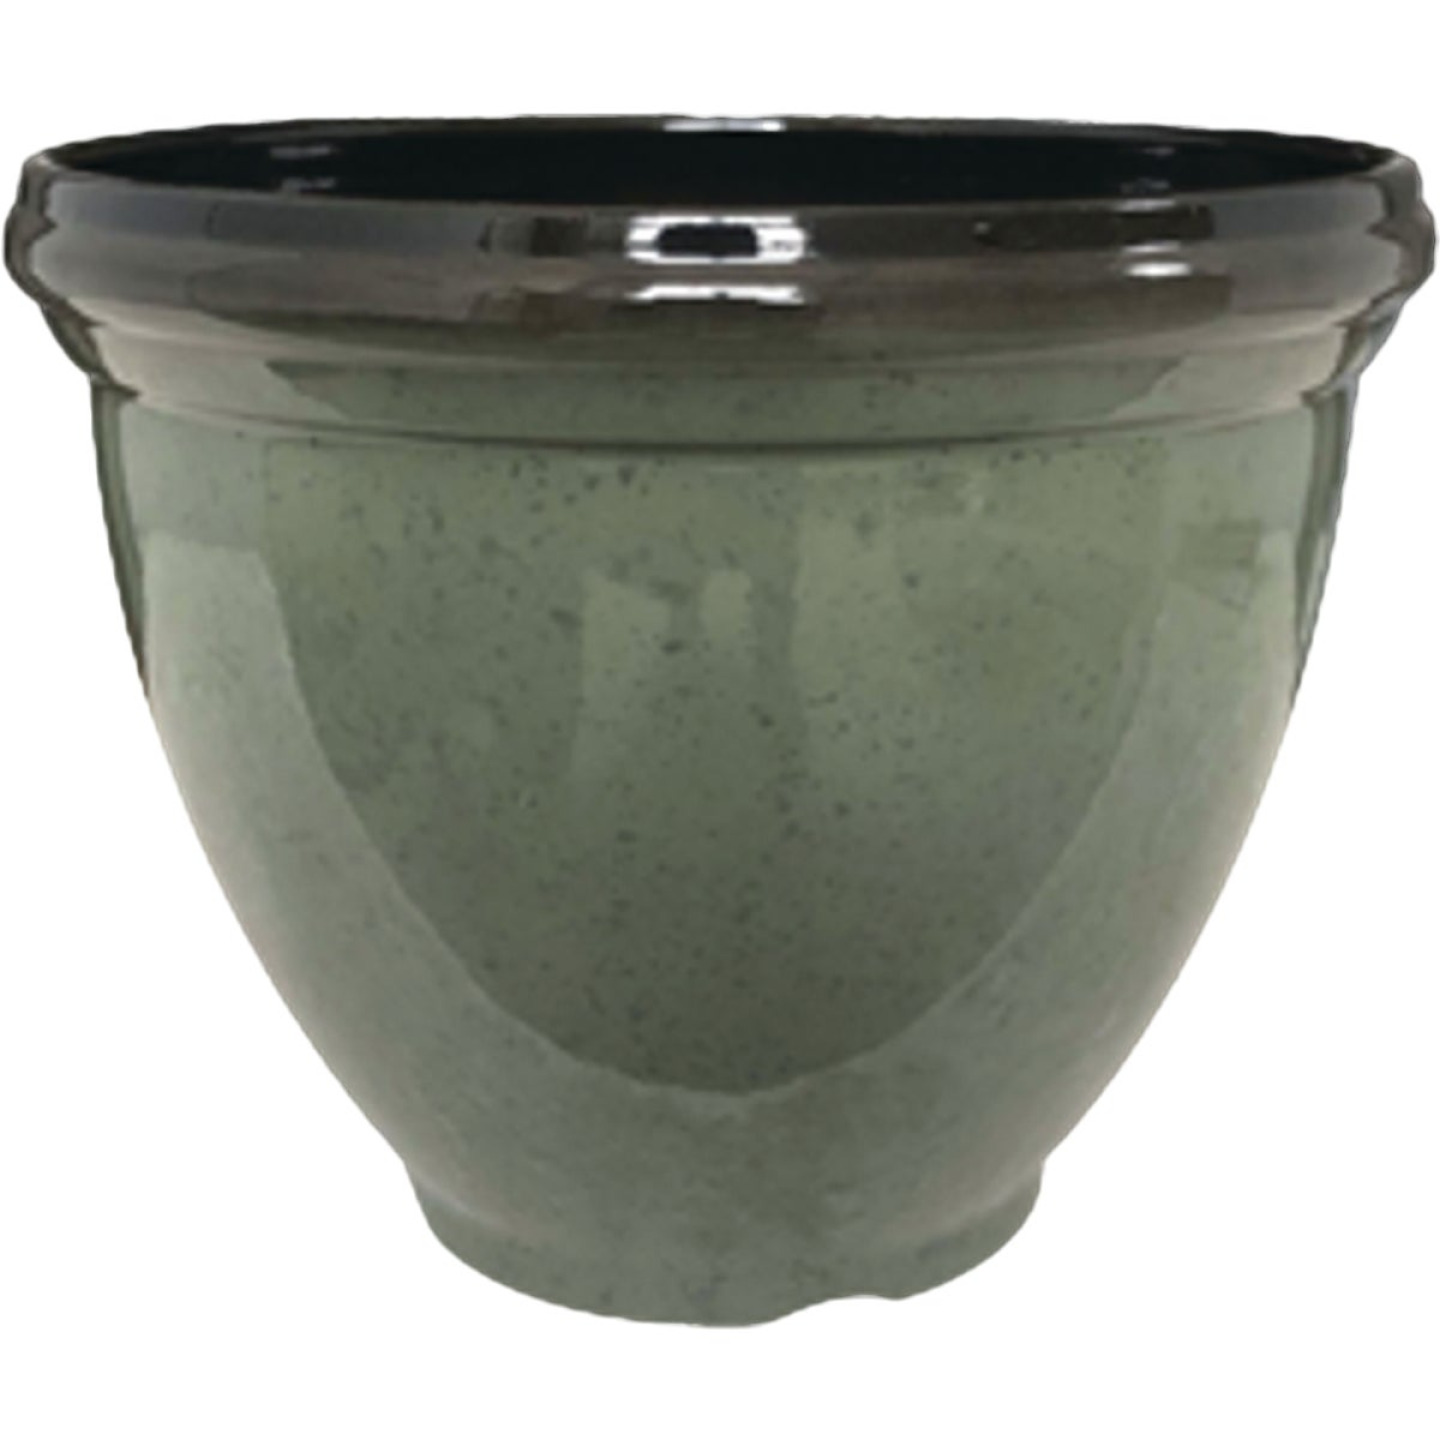 Southern Patio Heritage 12 In. Resin Climbing Ivy Planter Image 1